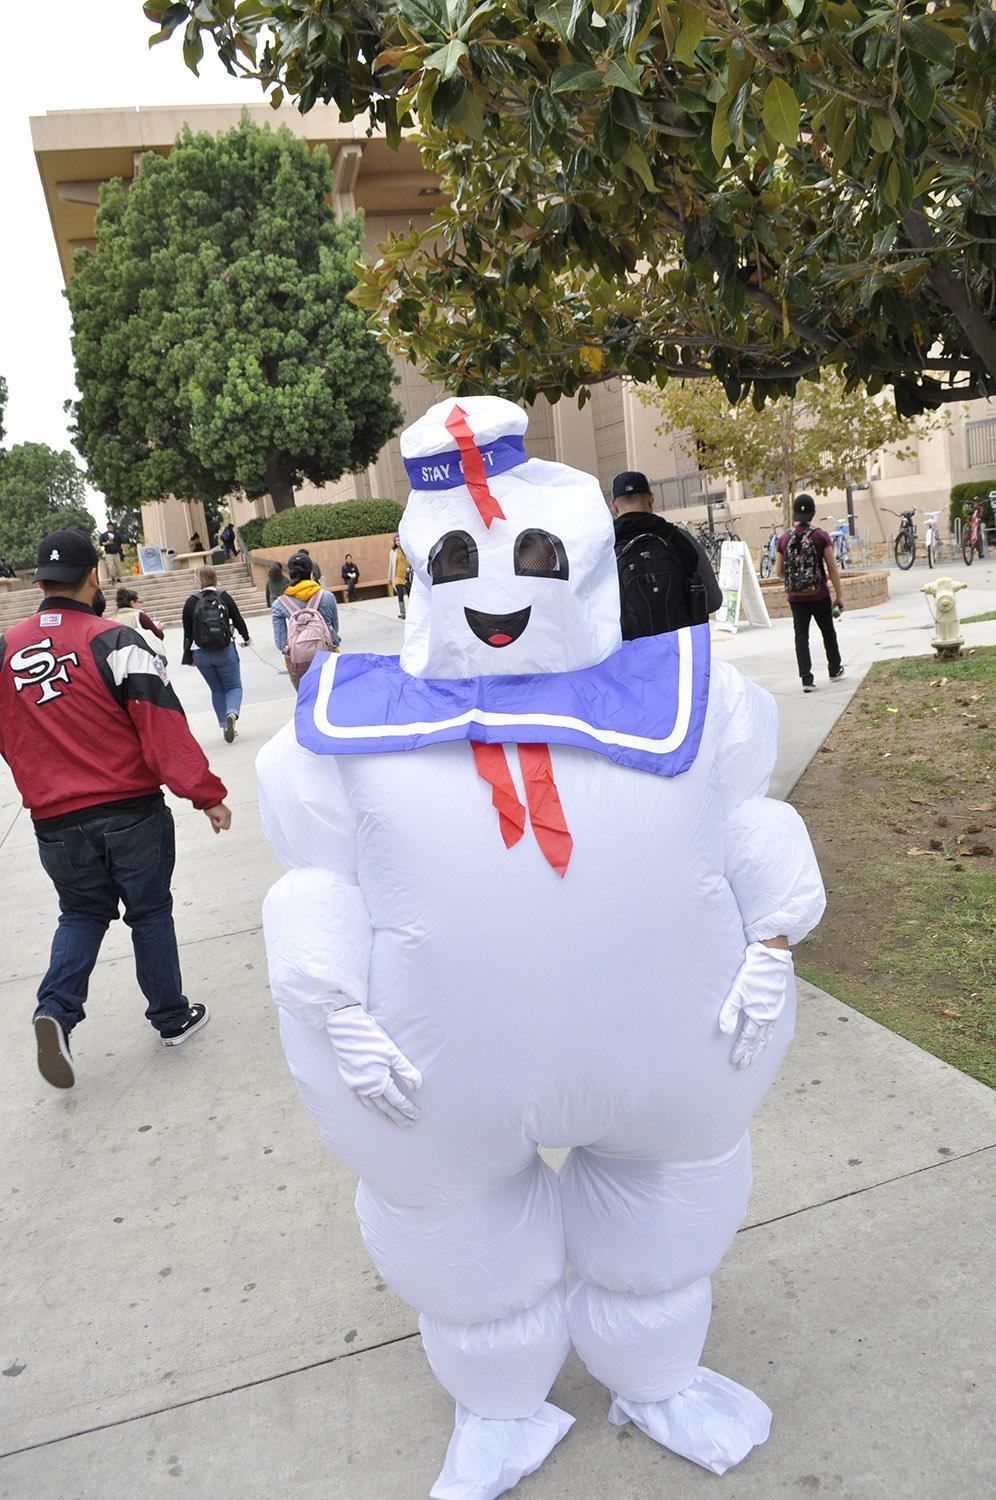 student+dressed+up+in+white+and+purple+inflatable+costume